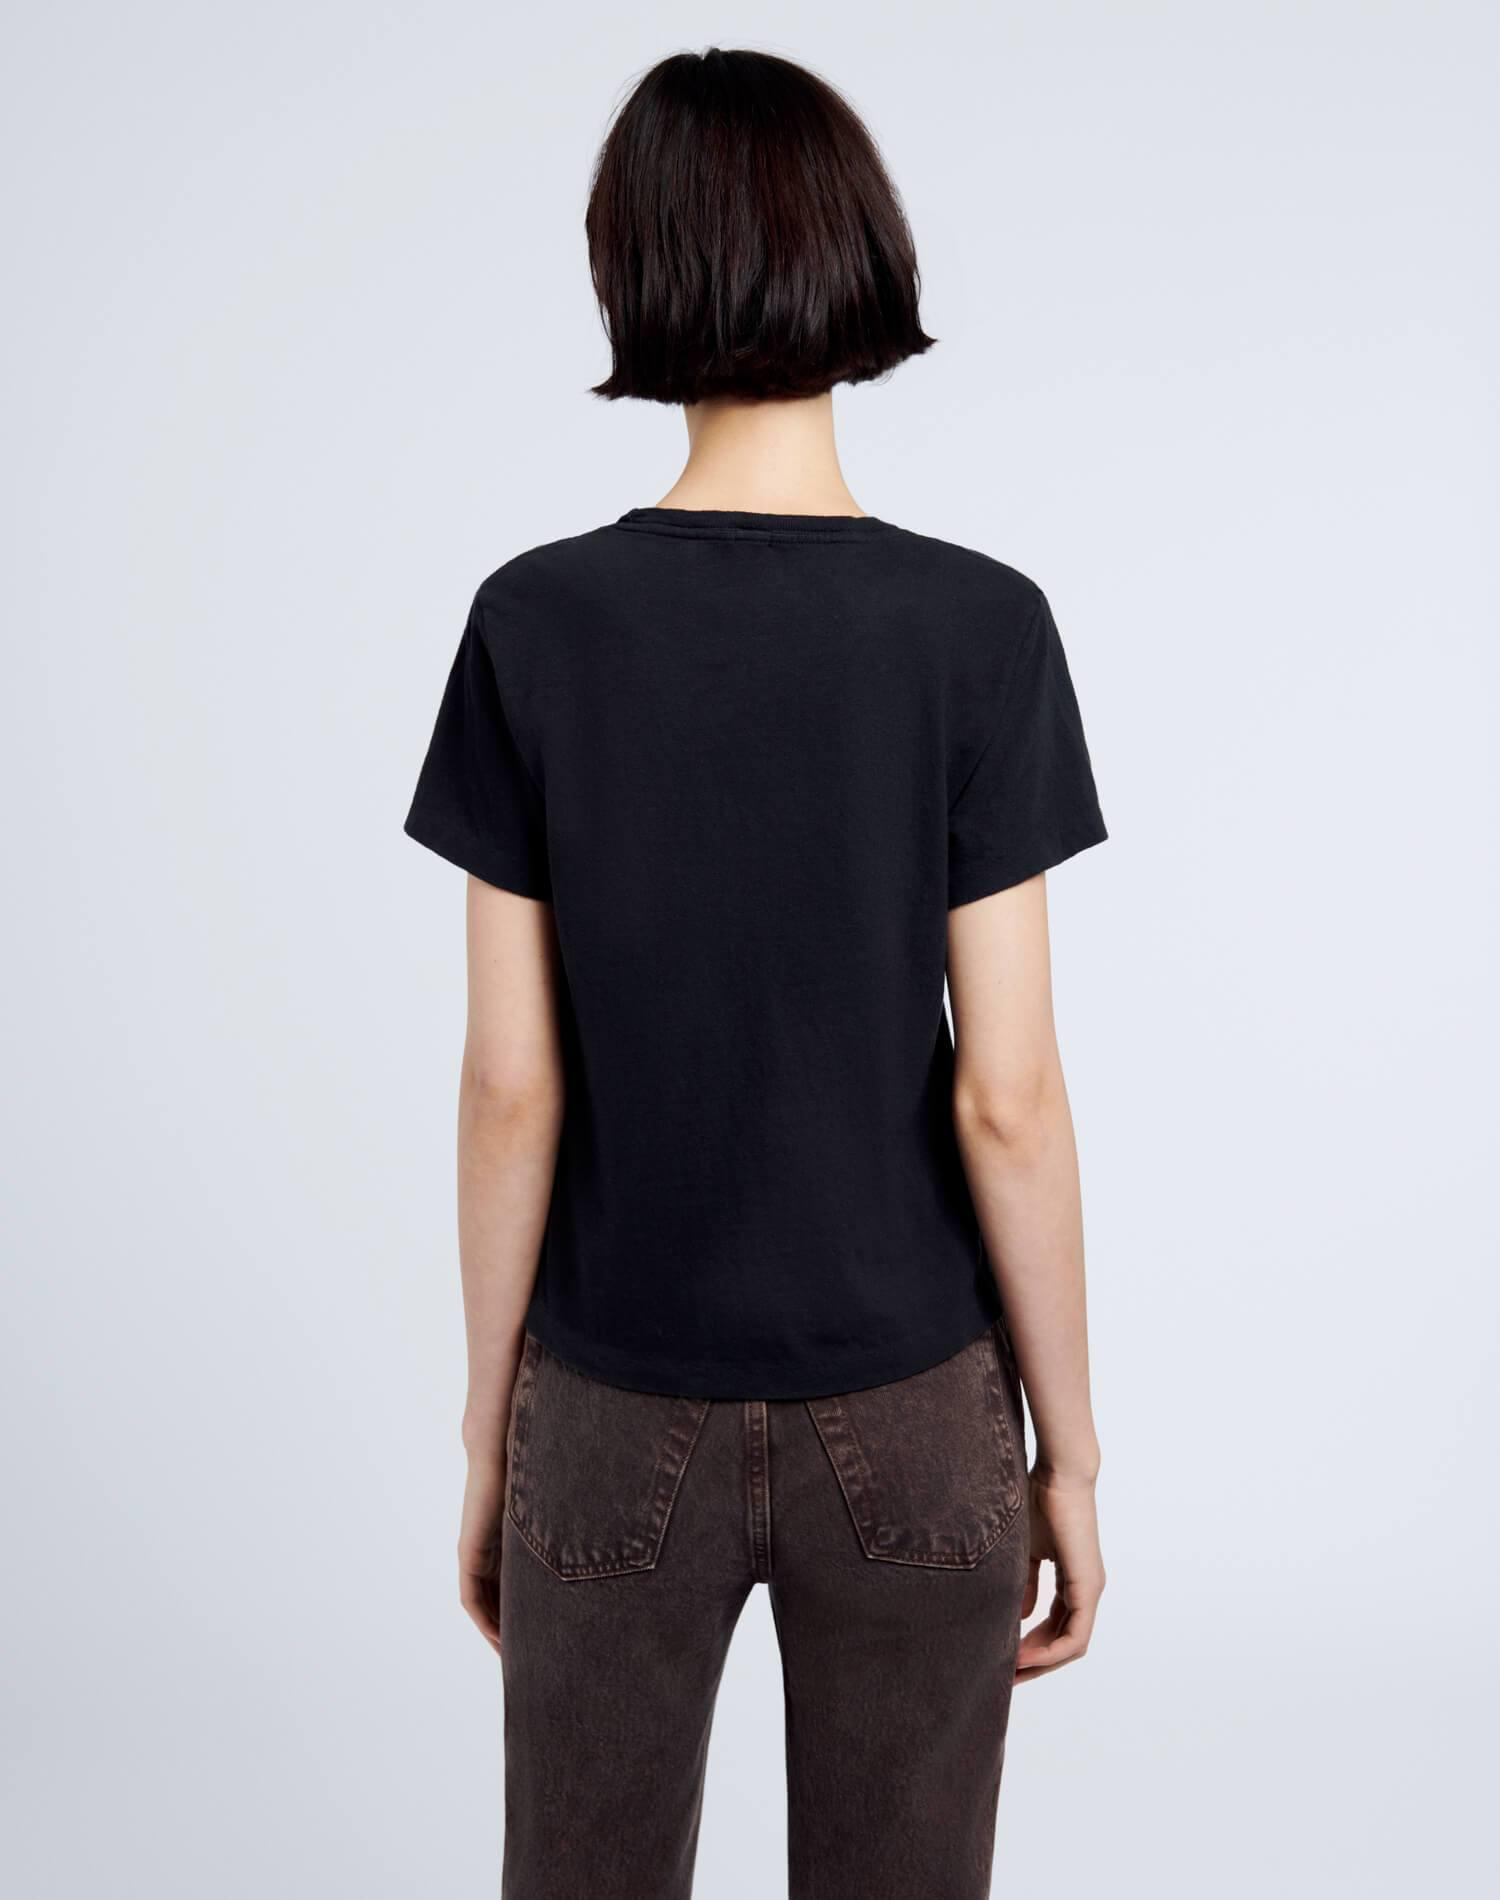 Heritage Cotton Classic Tee - Washed Black 4